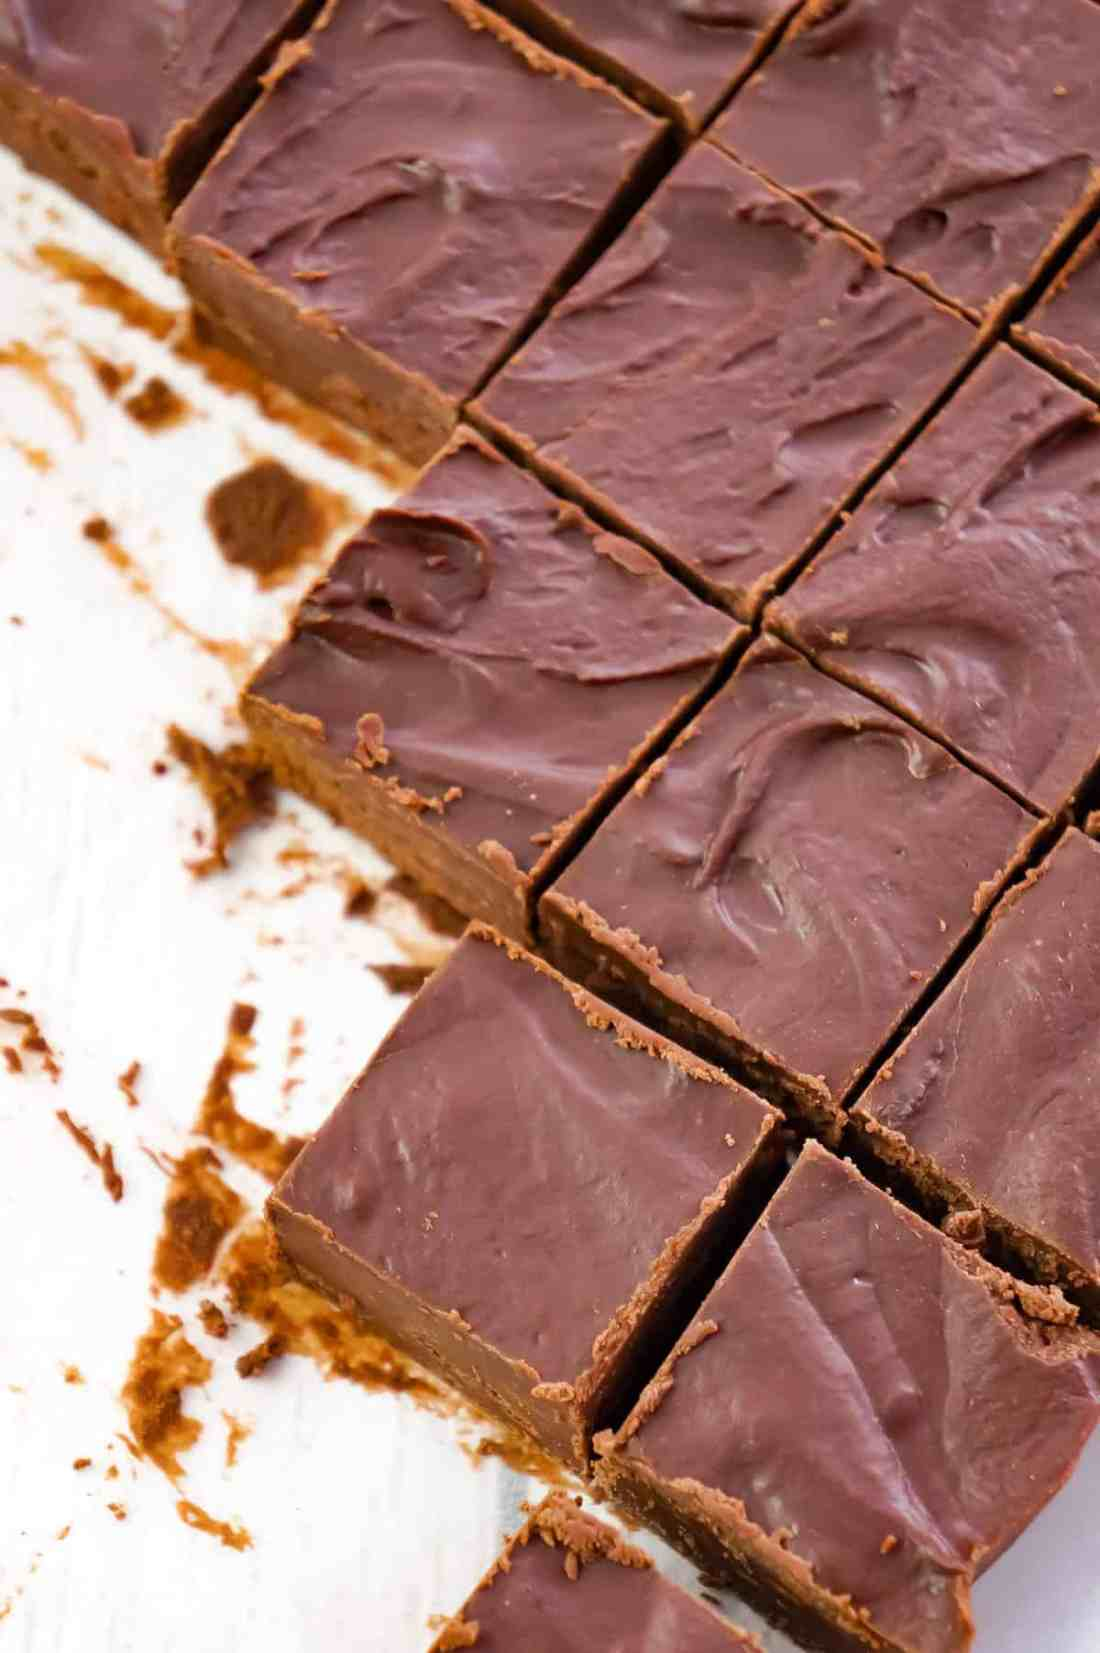 Easy Chocolate Fudge is a simple microwave fudge recipe using semi-sweet chocolate chips and chocolate frosting.